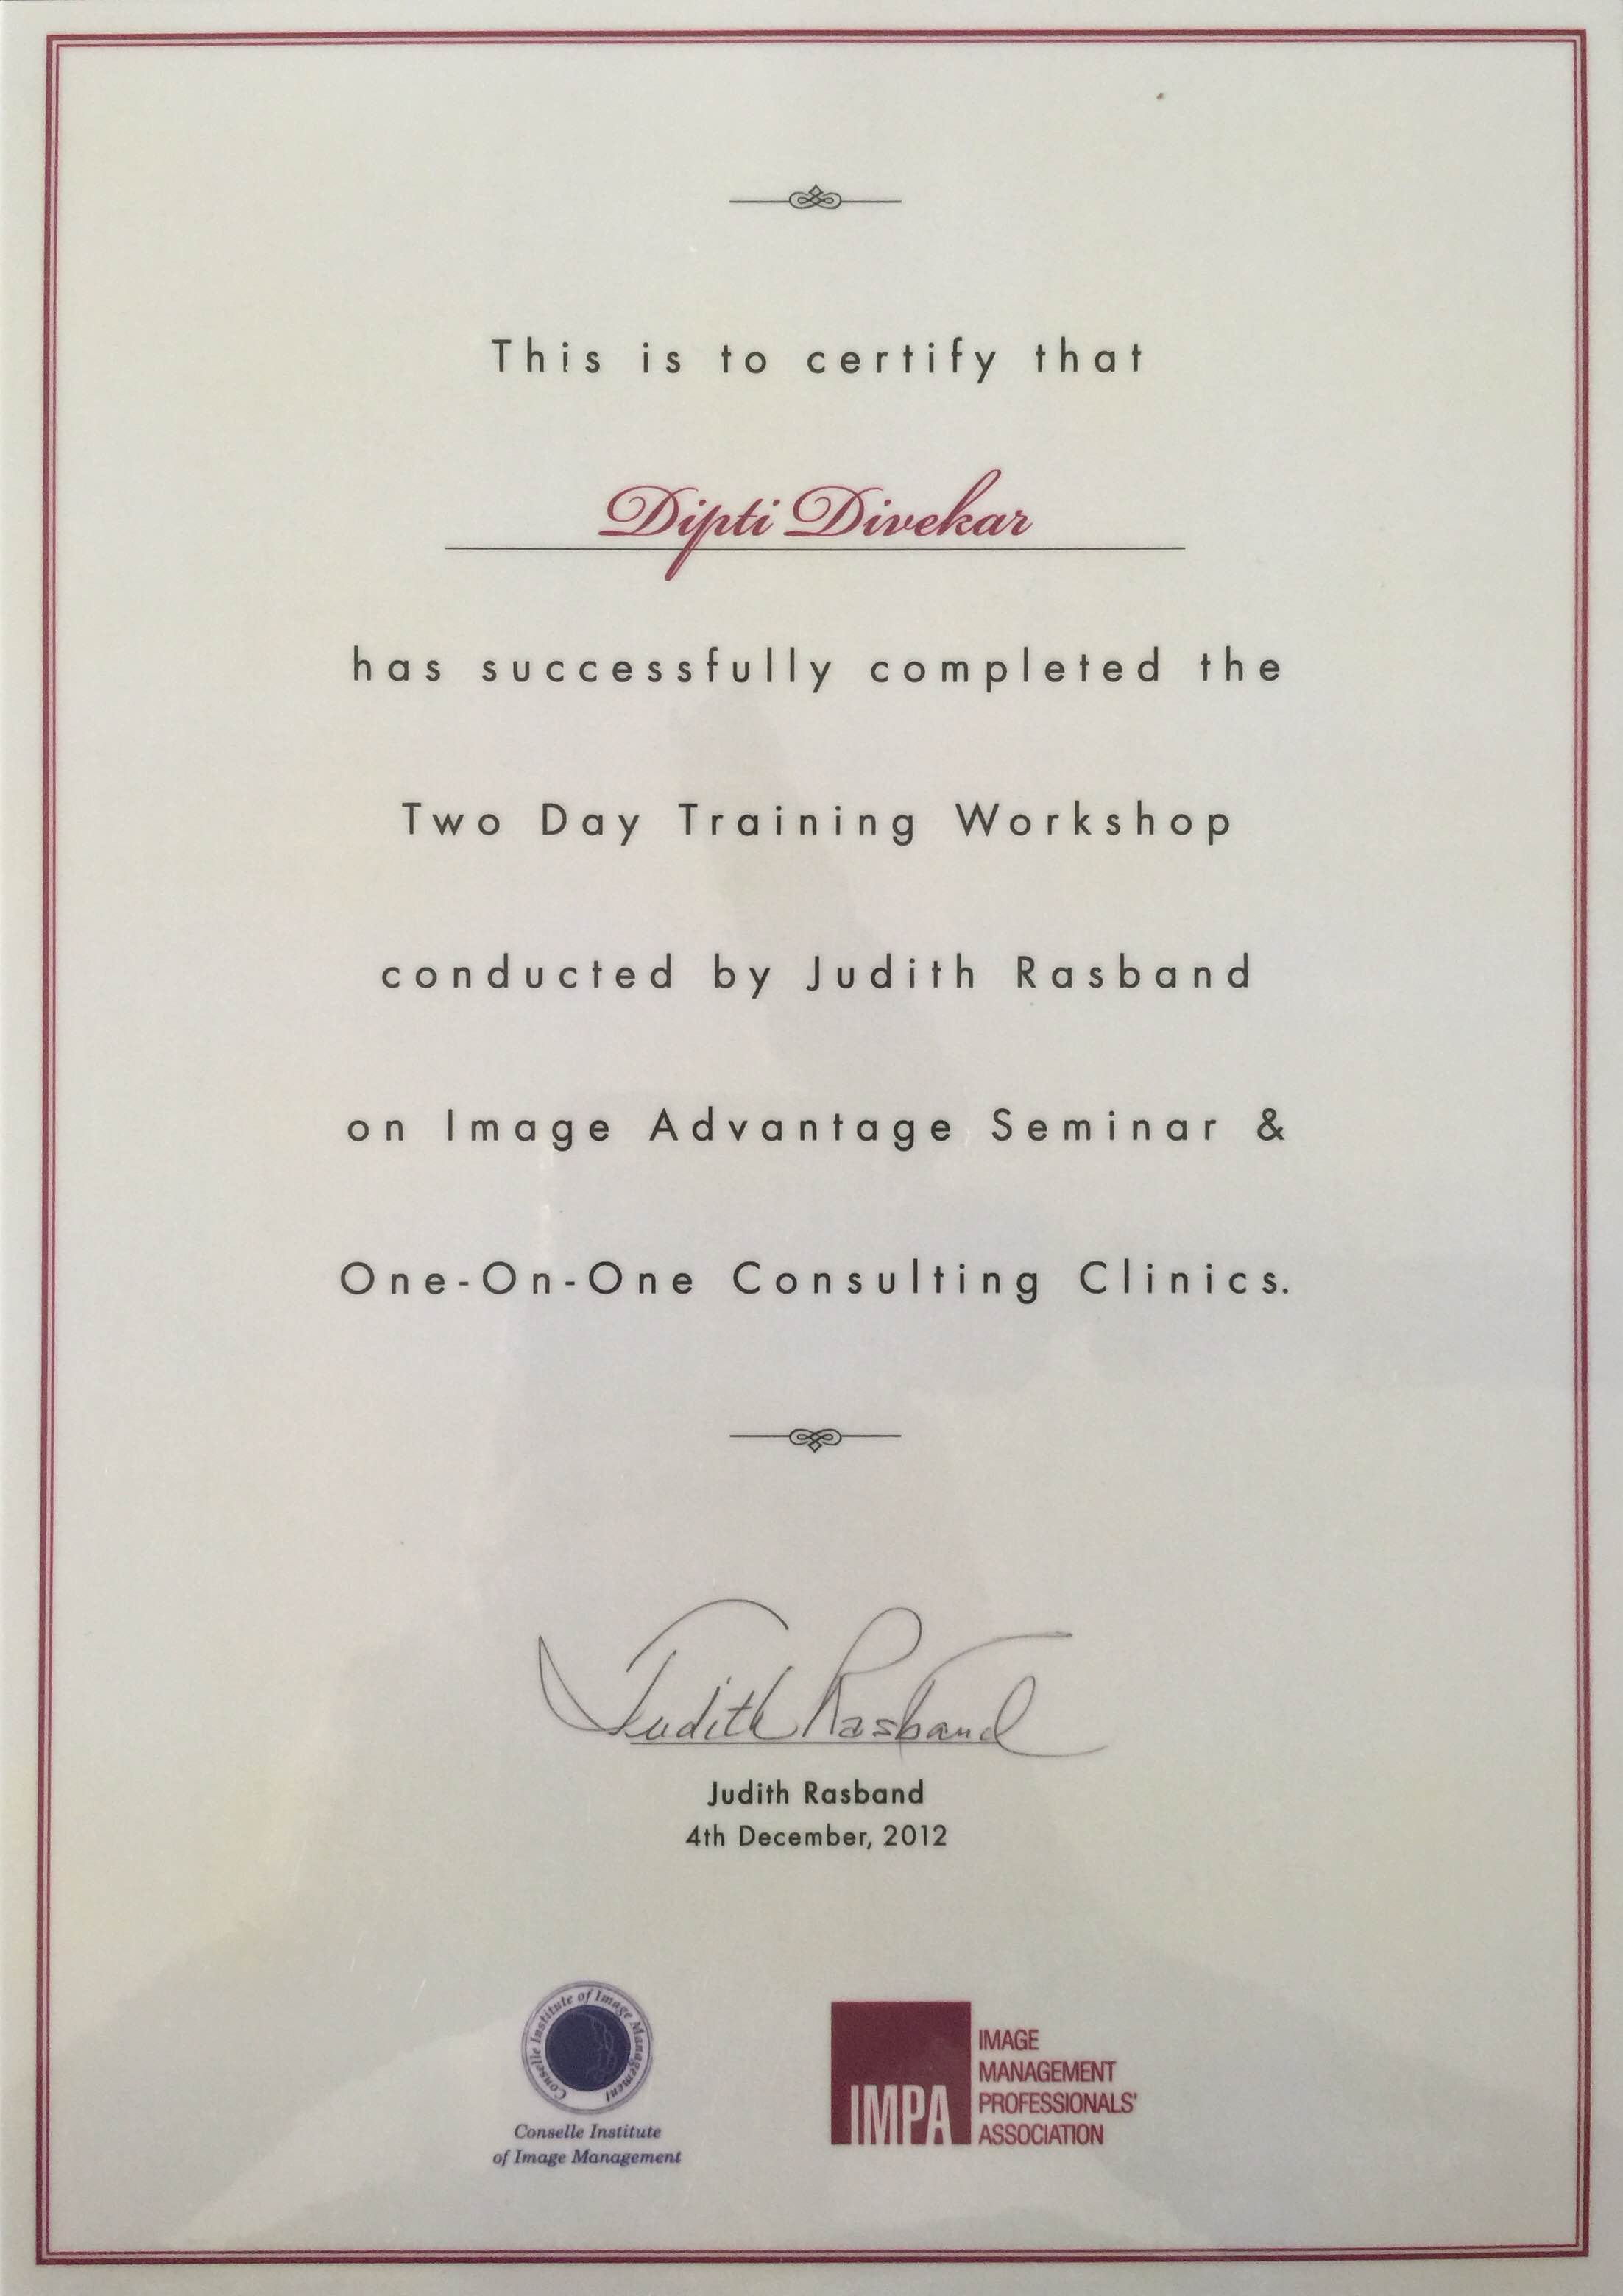 Certified by the Conselle Institute of Image Management U.S.A. & the Image Management Professionals Association